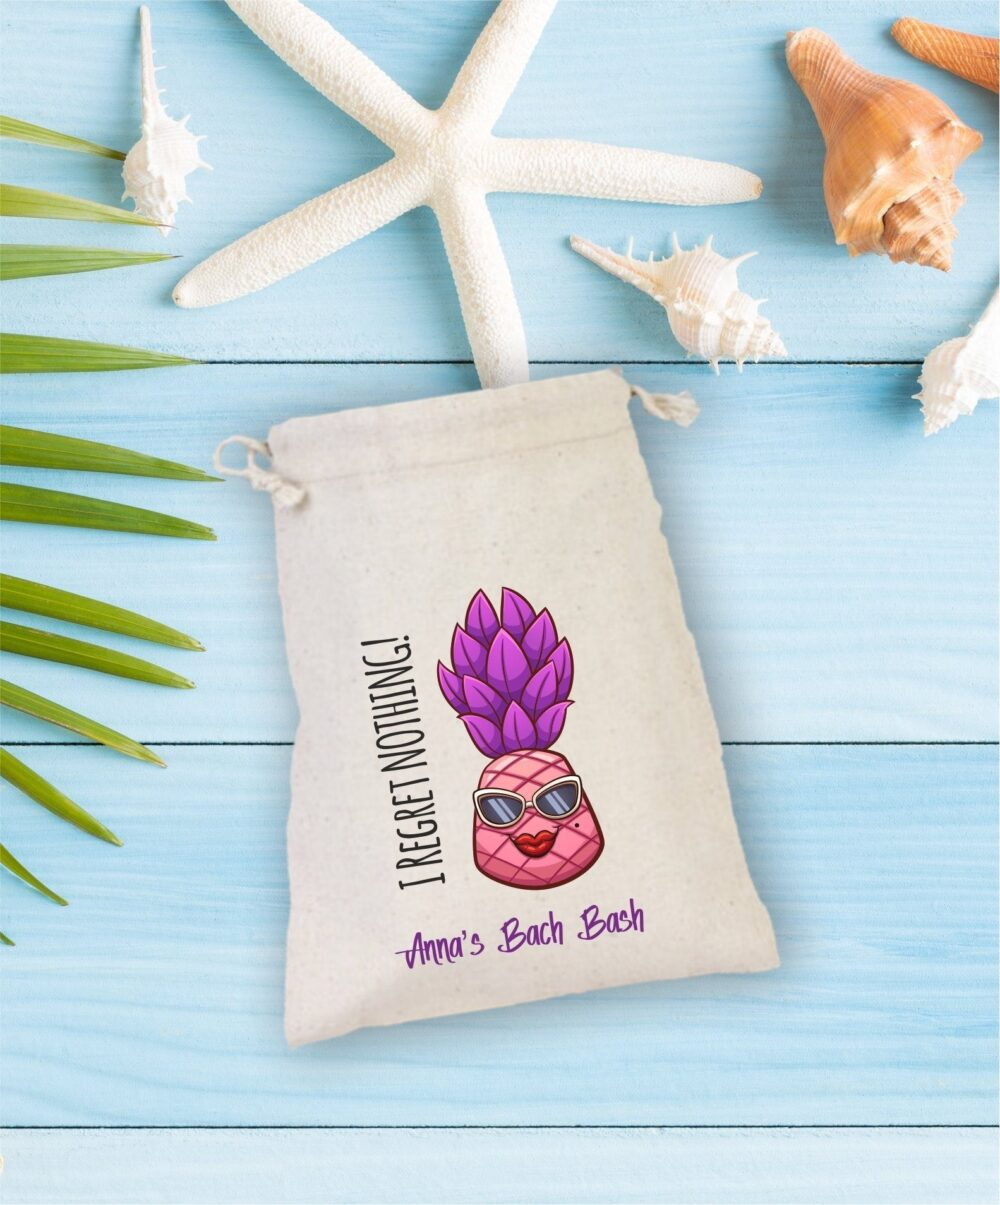 I Regret Nothing , Bachelorette Party Hangover Kit, Drawstring Mini Favor Bags, Wedding Part Favor, Sunglass, Personalized Bag, Pineapple